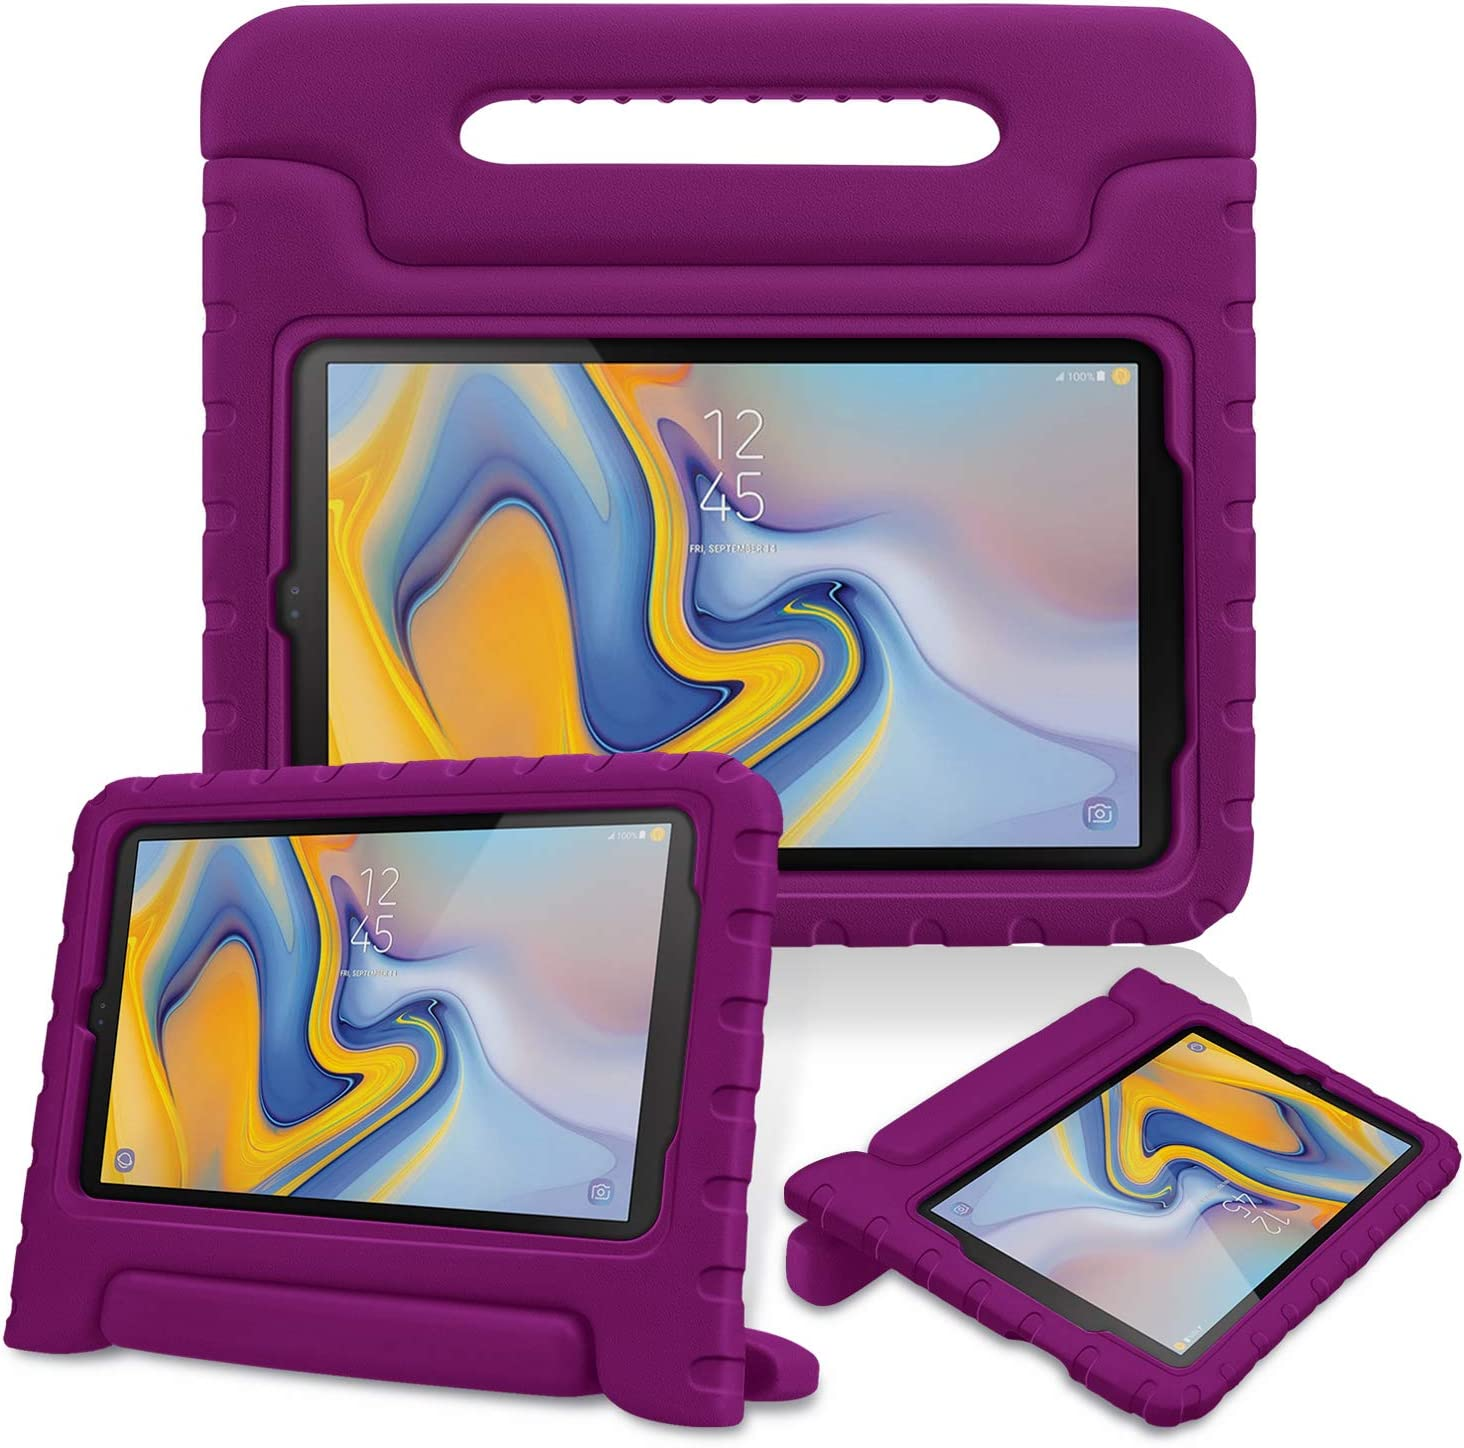 Fintie Shockproof Case for Samsung Galaxy Tab A 8.0 2018 Model SM-T387 Verizon/Sprint/T-Mobile/AT&T, Kiddie Series Light Weight Convertible Handle Stand Kids Friendly Cover, Purple